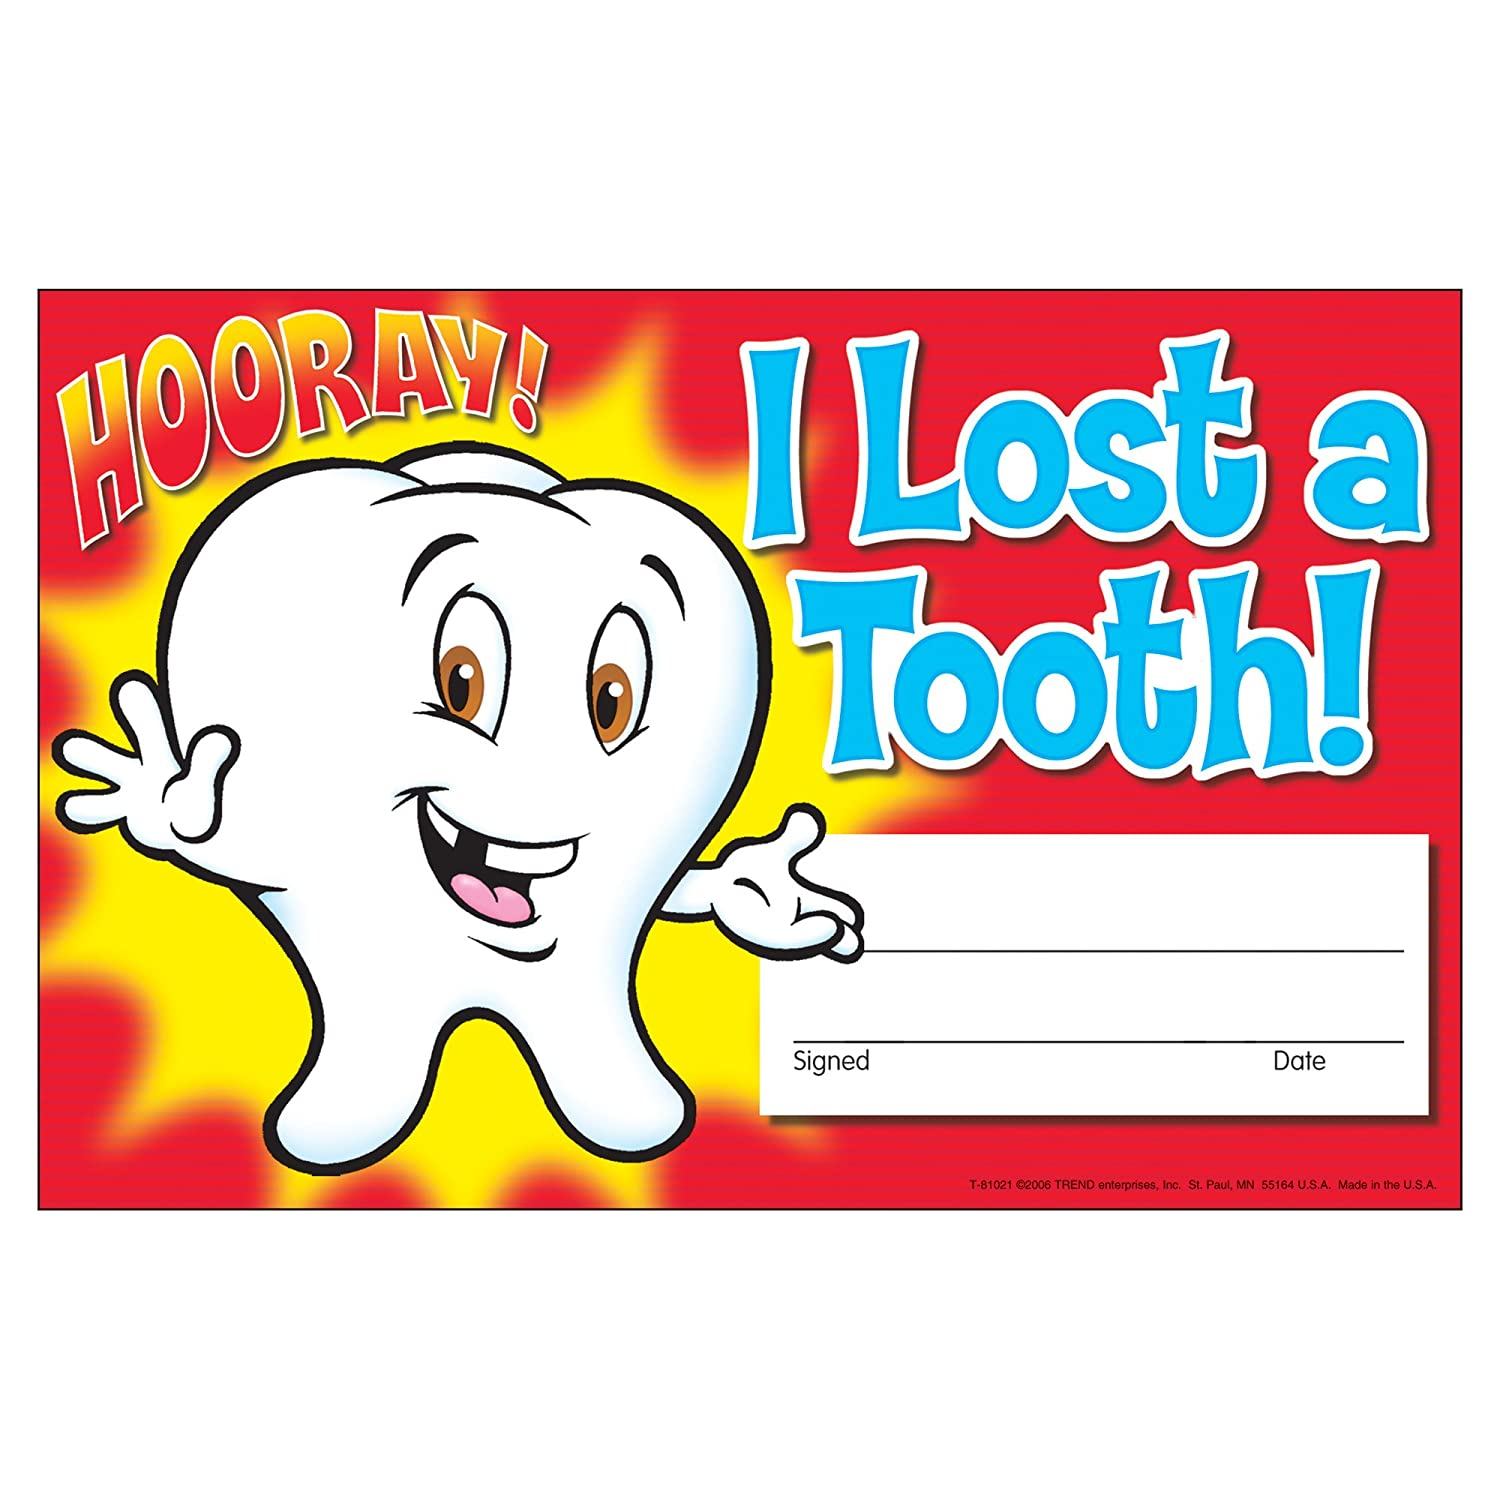 12 Packs Hooray Recognition Awards T-81021BN I Lost a Tooth Inc TREND Enterprises 30 Per Pack